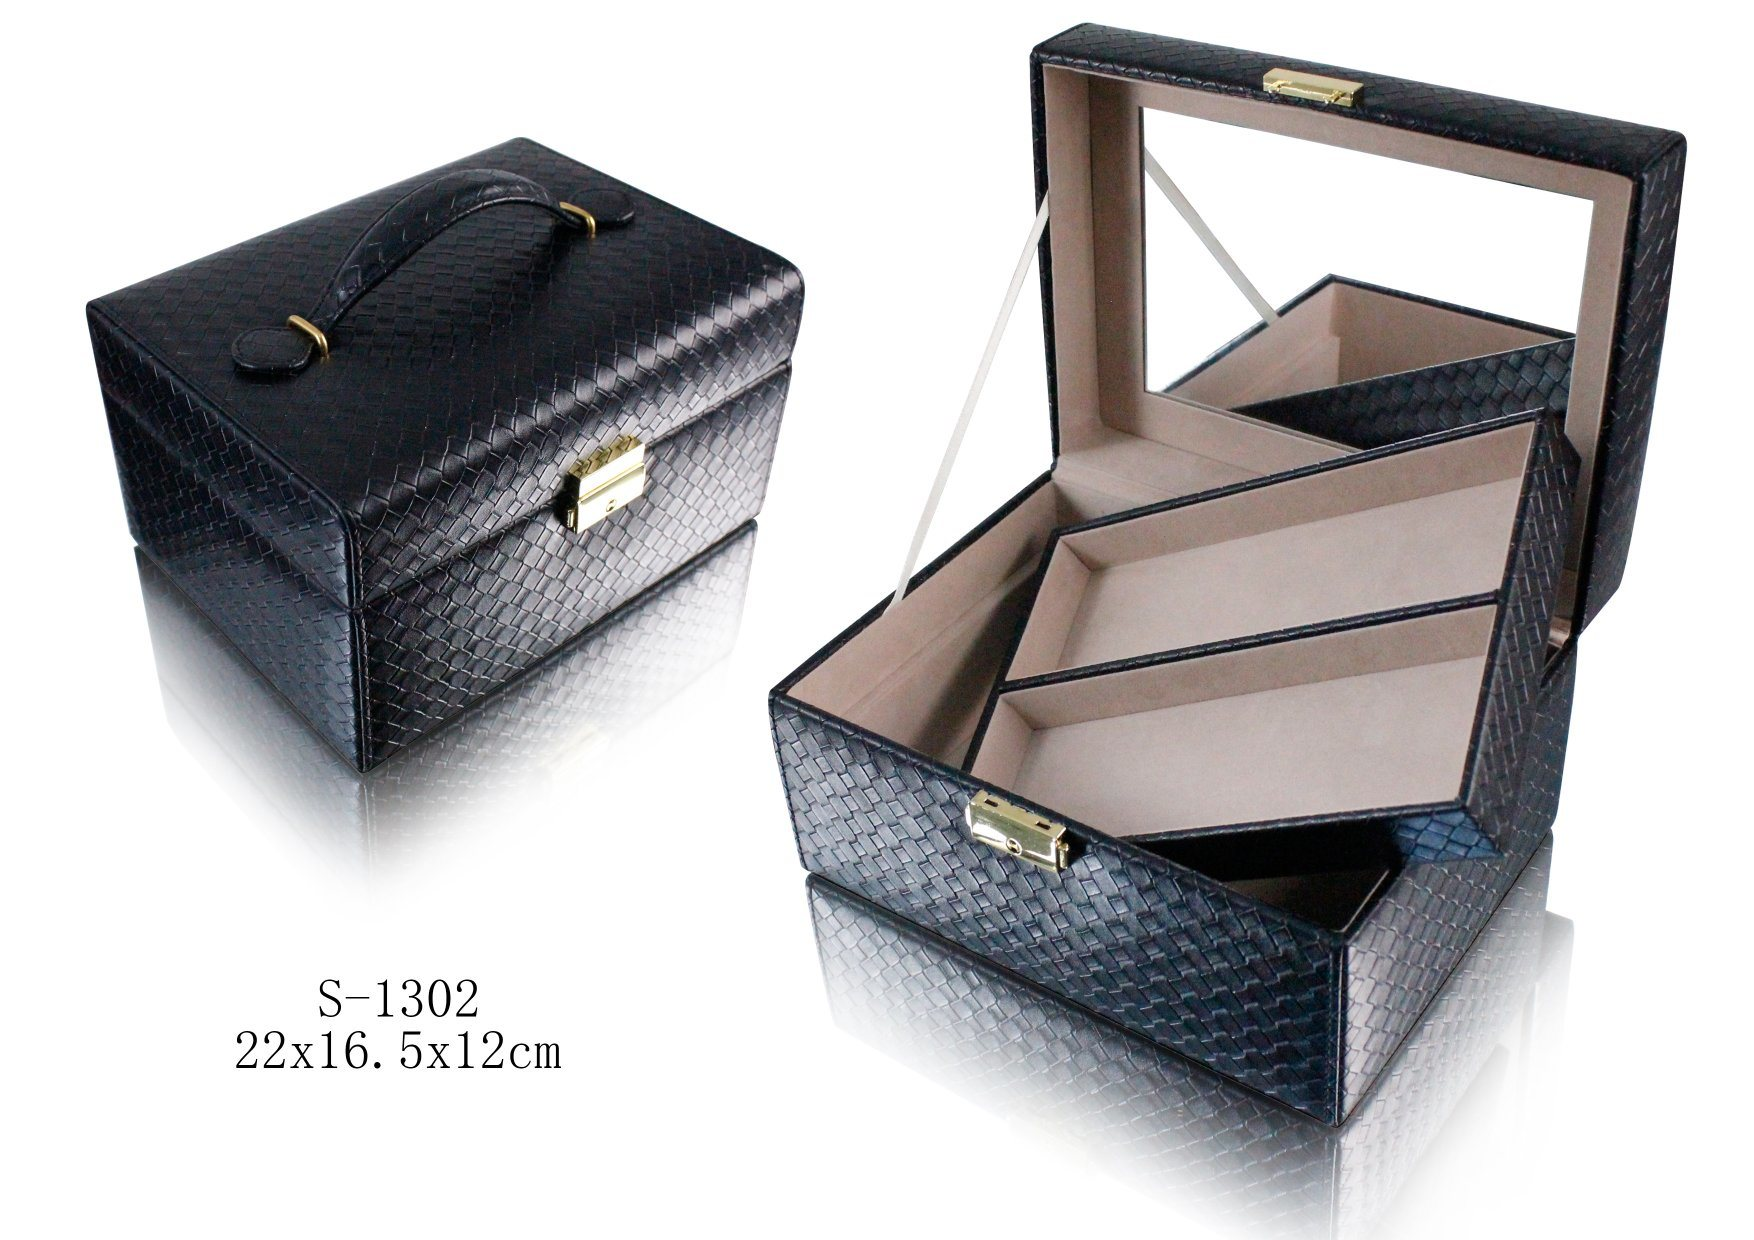 Black Leather Cosmetic Case with Gold Hardware